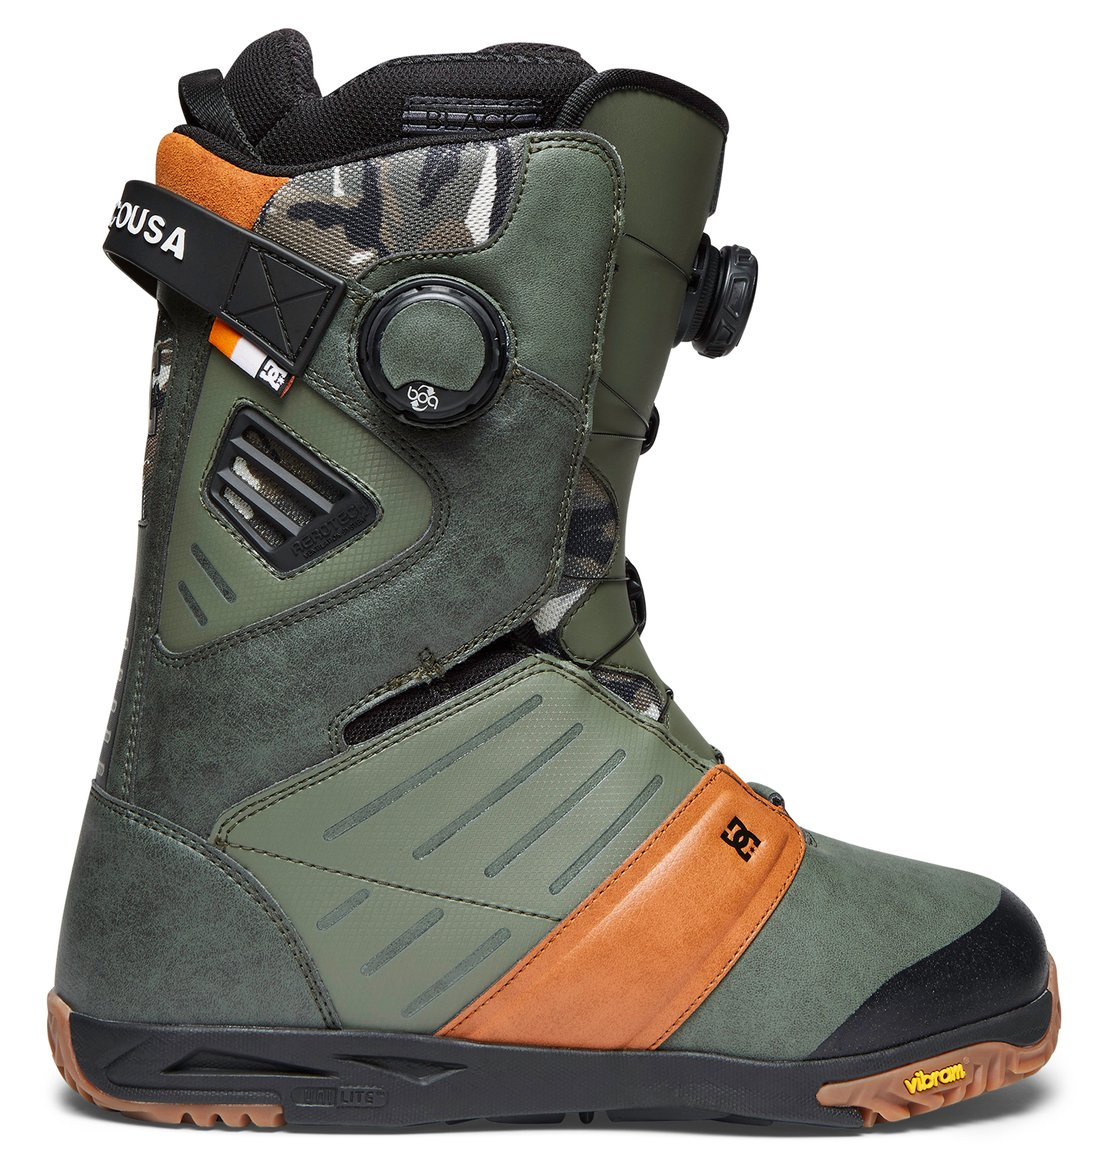 Snowboard Judge BOA Shoes ADYO100025DC Boots NOn0wPZk8X